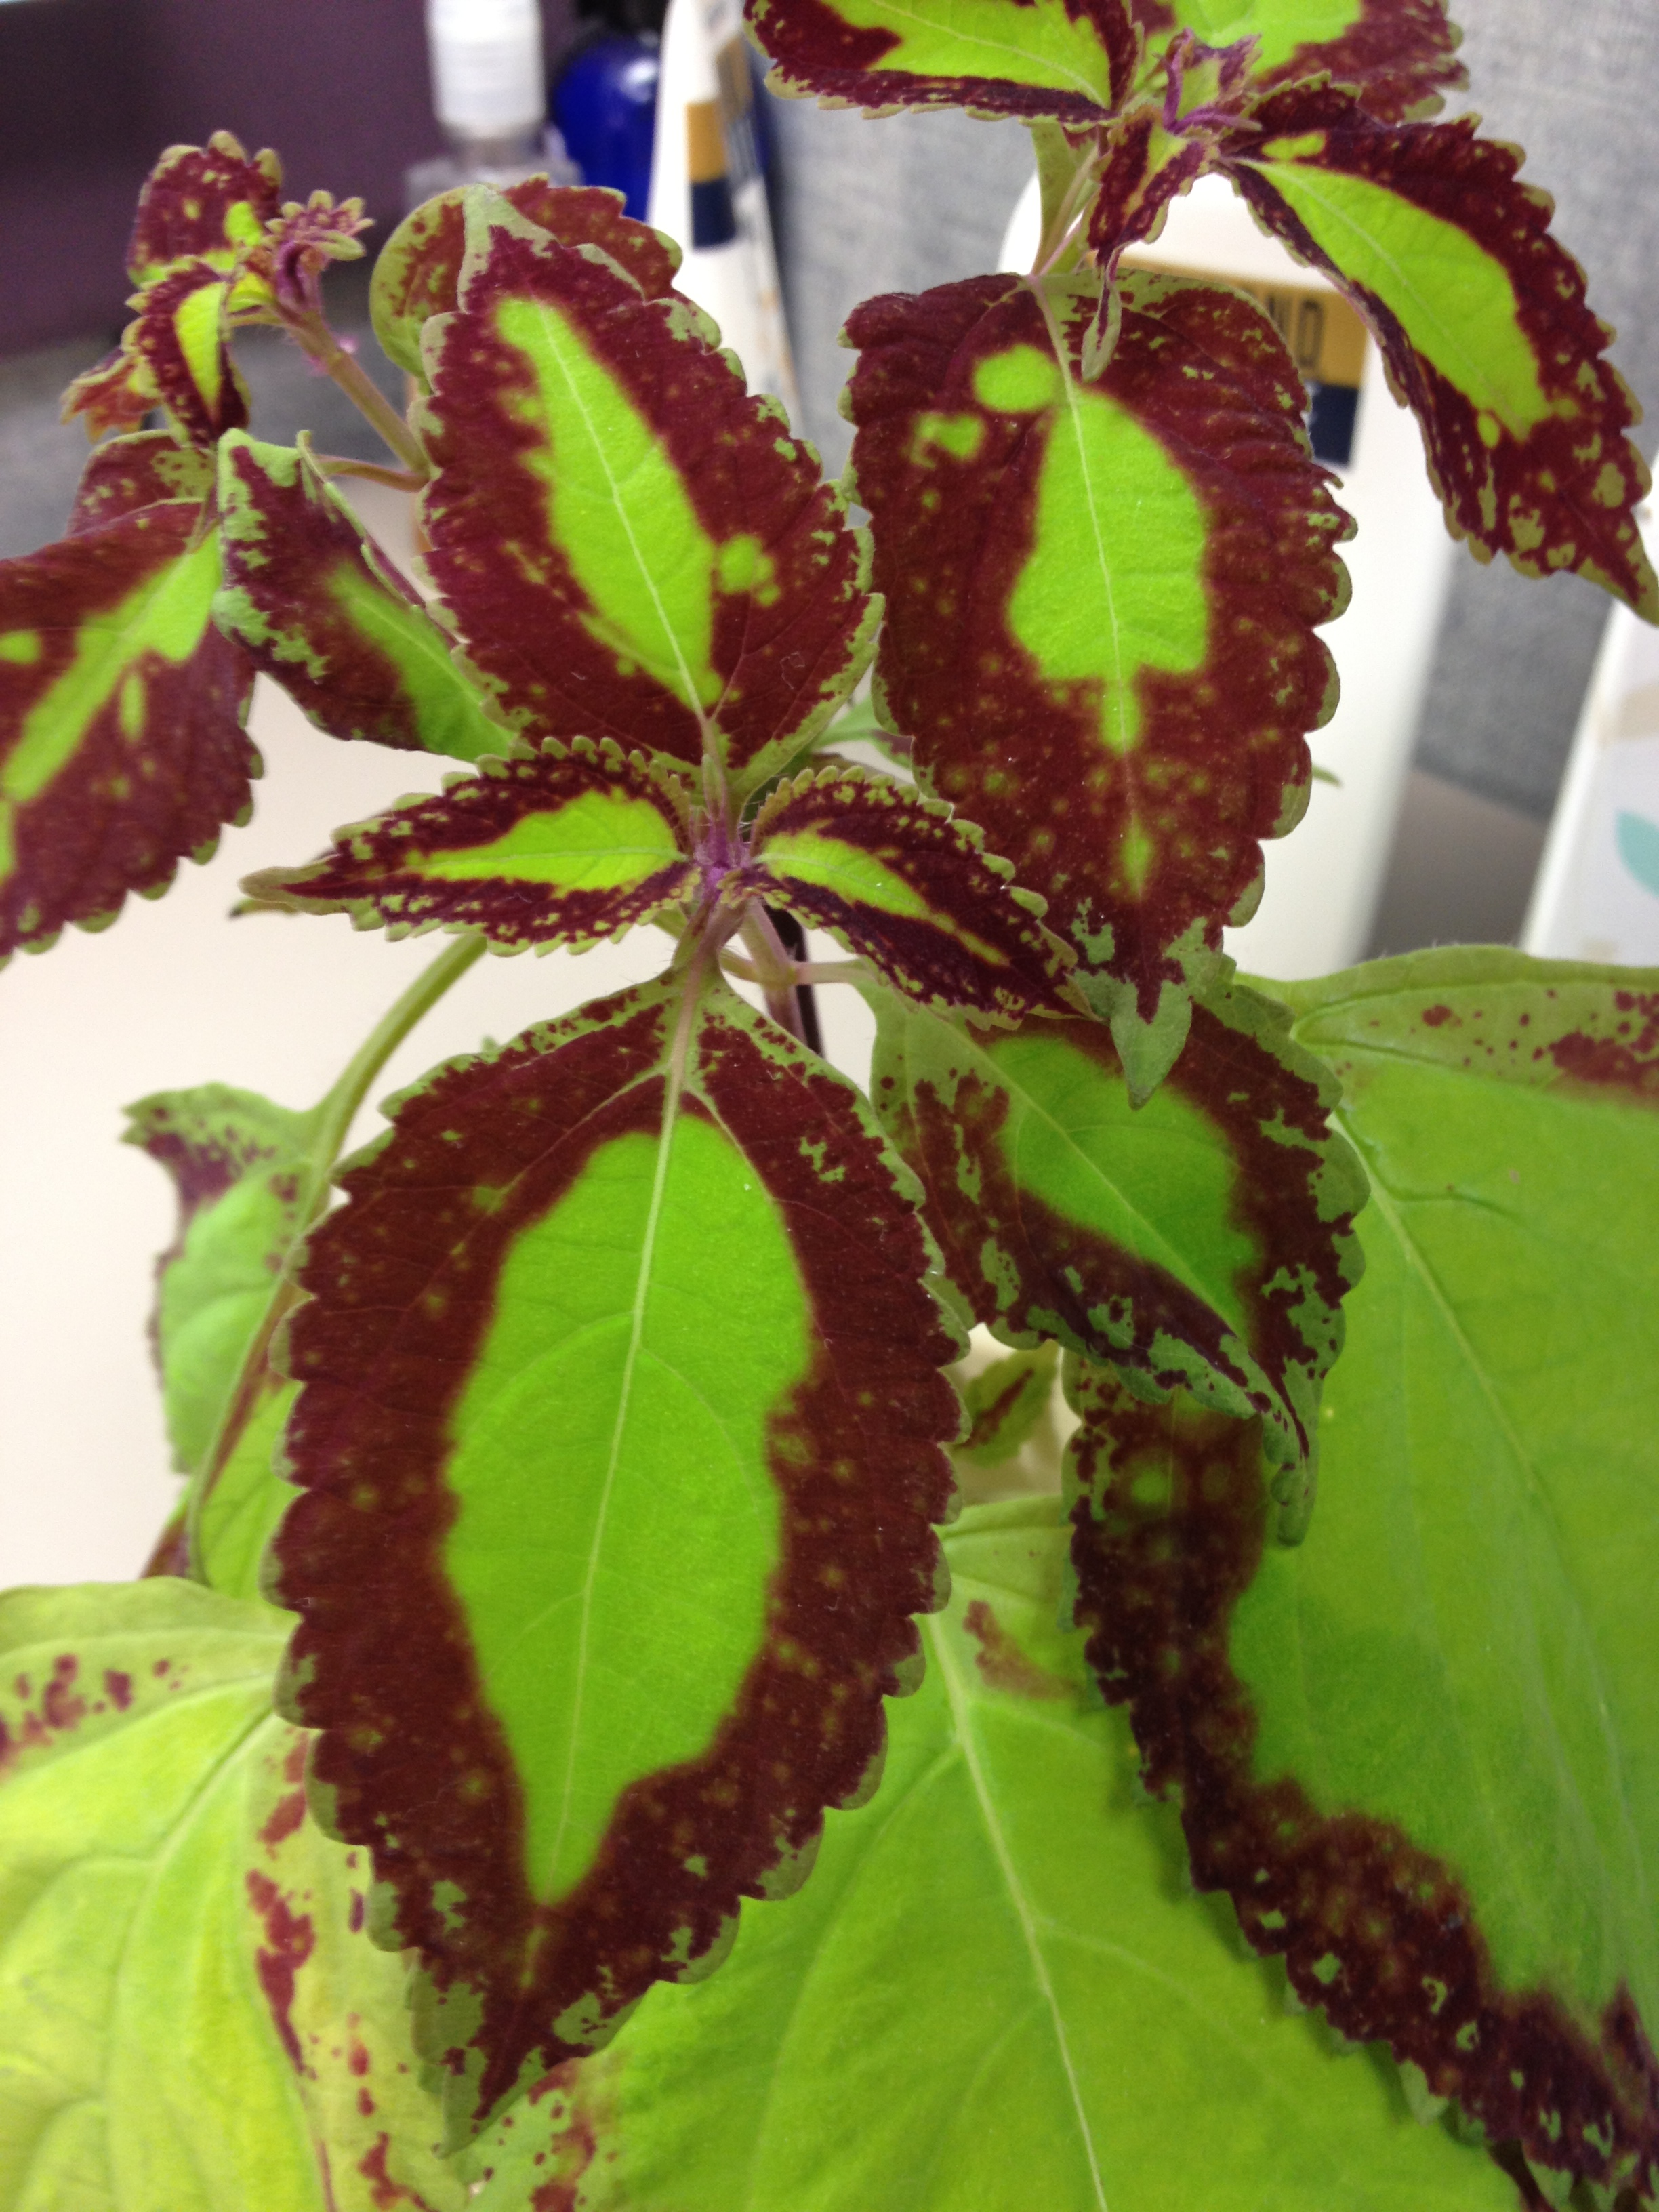 Best Kitchen Gallery: How To Identify A Houseplant Coleus Plant Ask Judy of House Plant Identifier By Leaf on rachelxblog.com